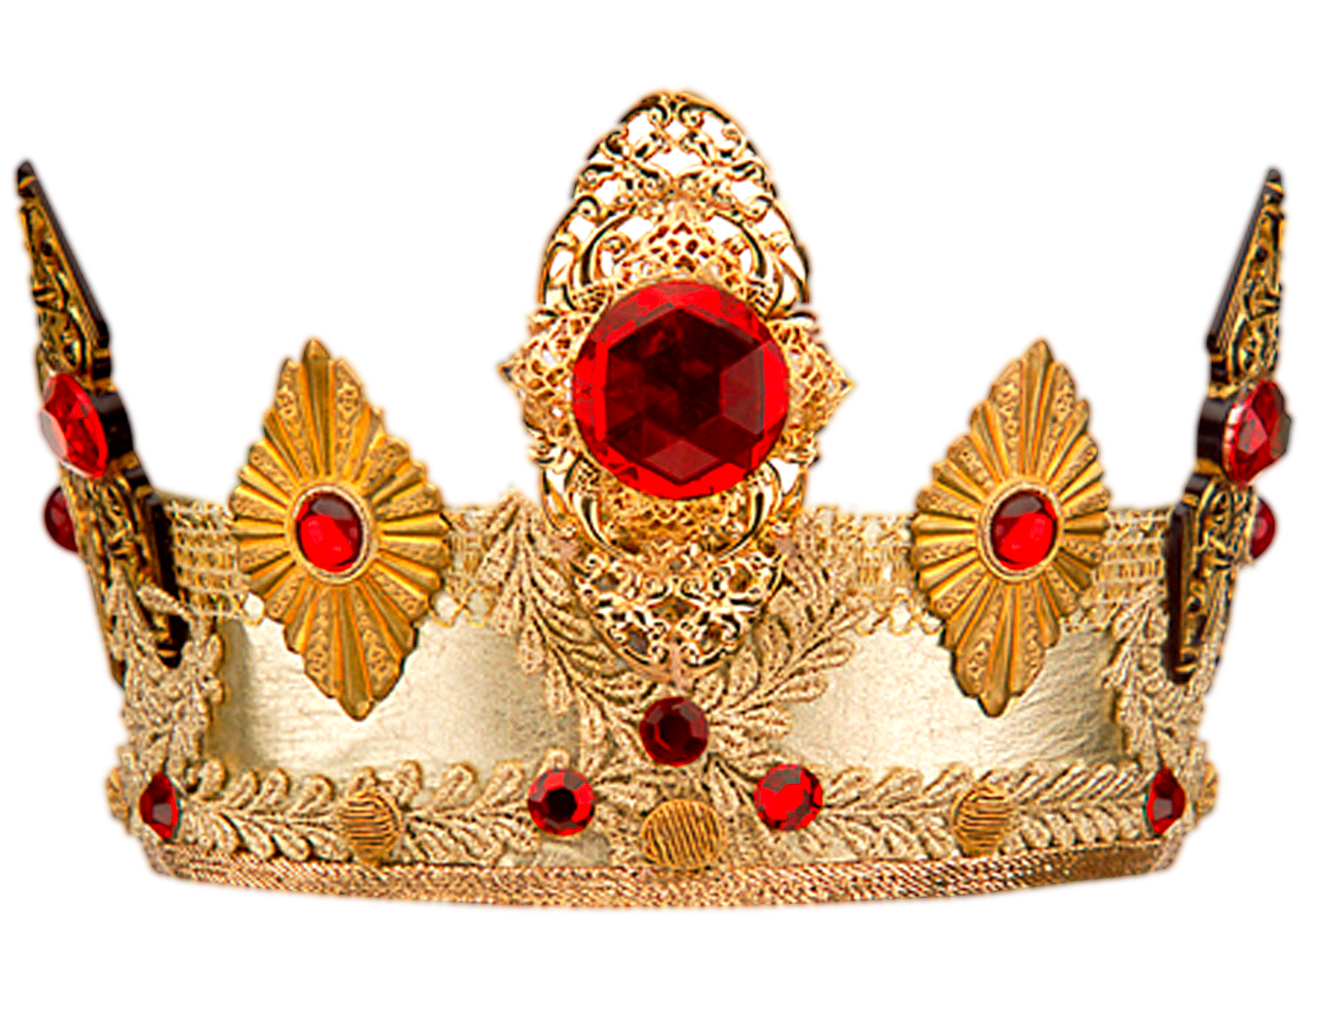 King Crown Png Image. Resolution: 1319 X 1019. Size: 1.692 MB Format: PNG  With Alpha Transparent - Kings Crown PNG HD